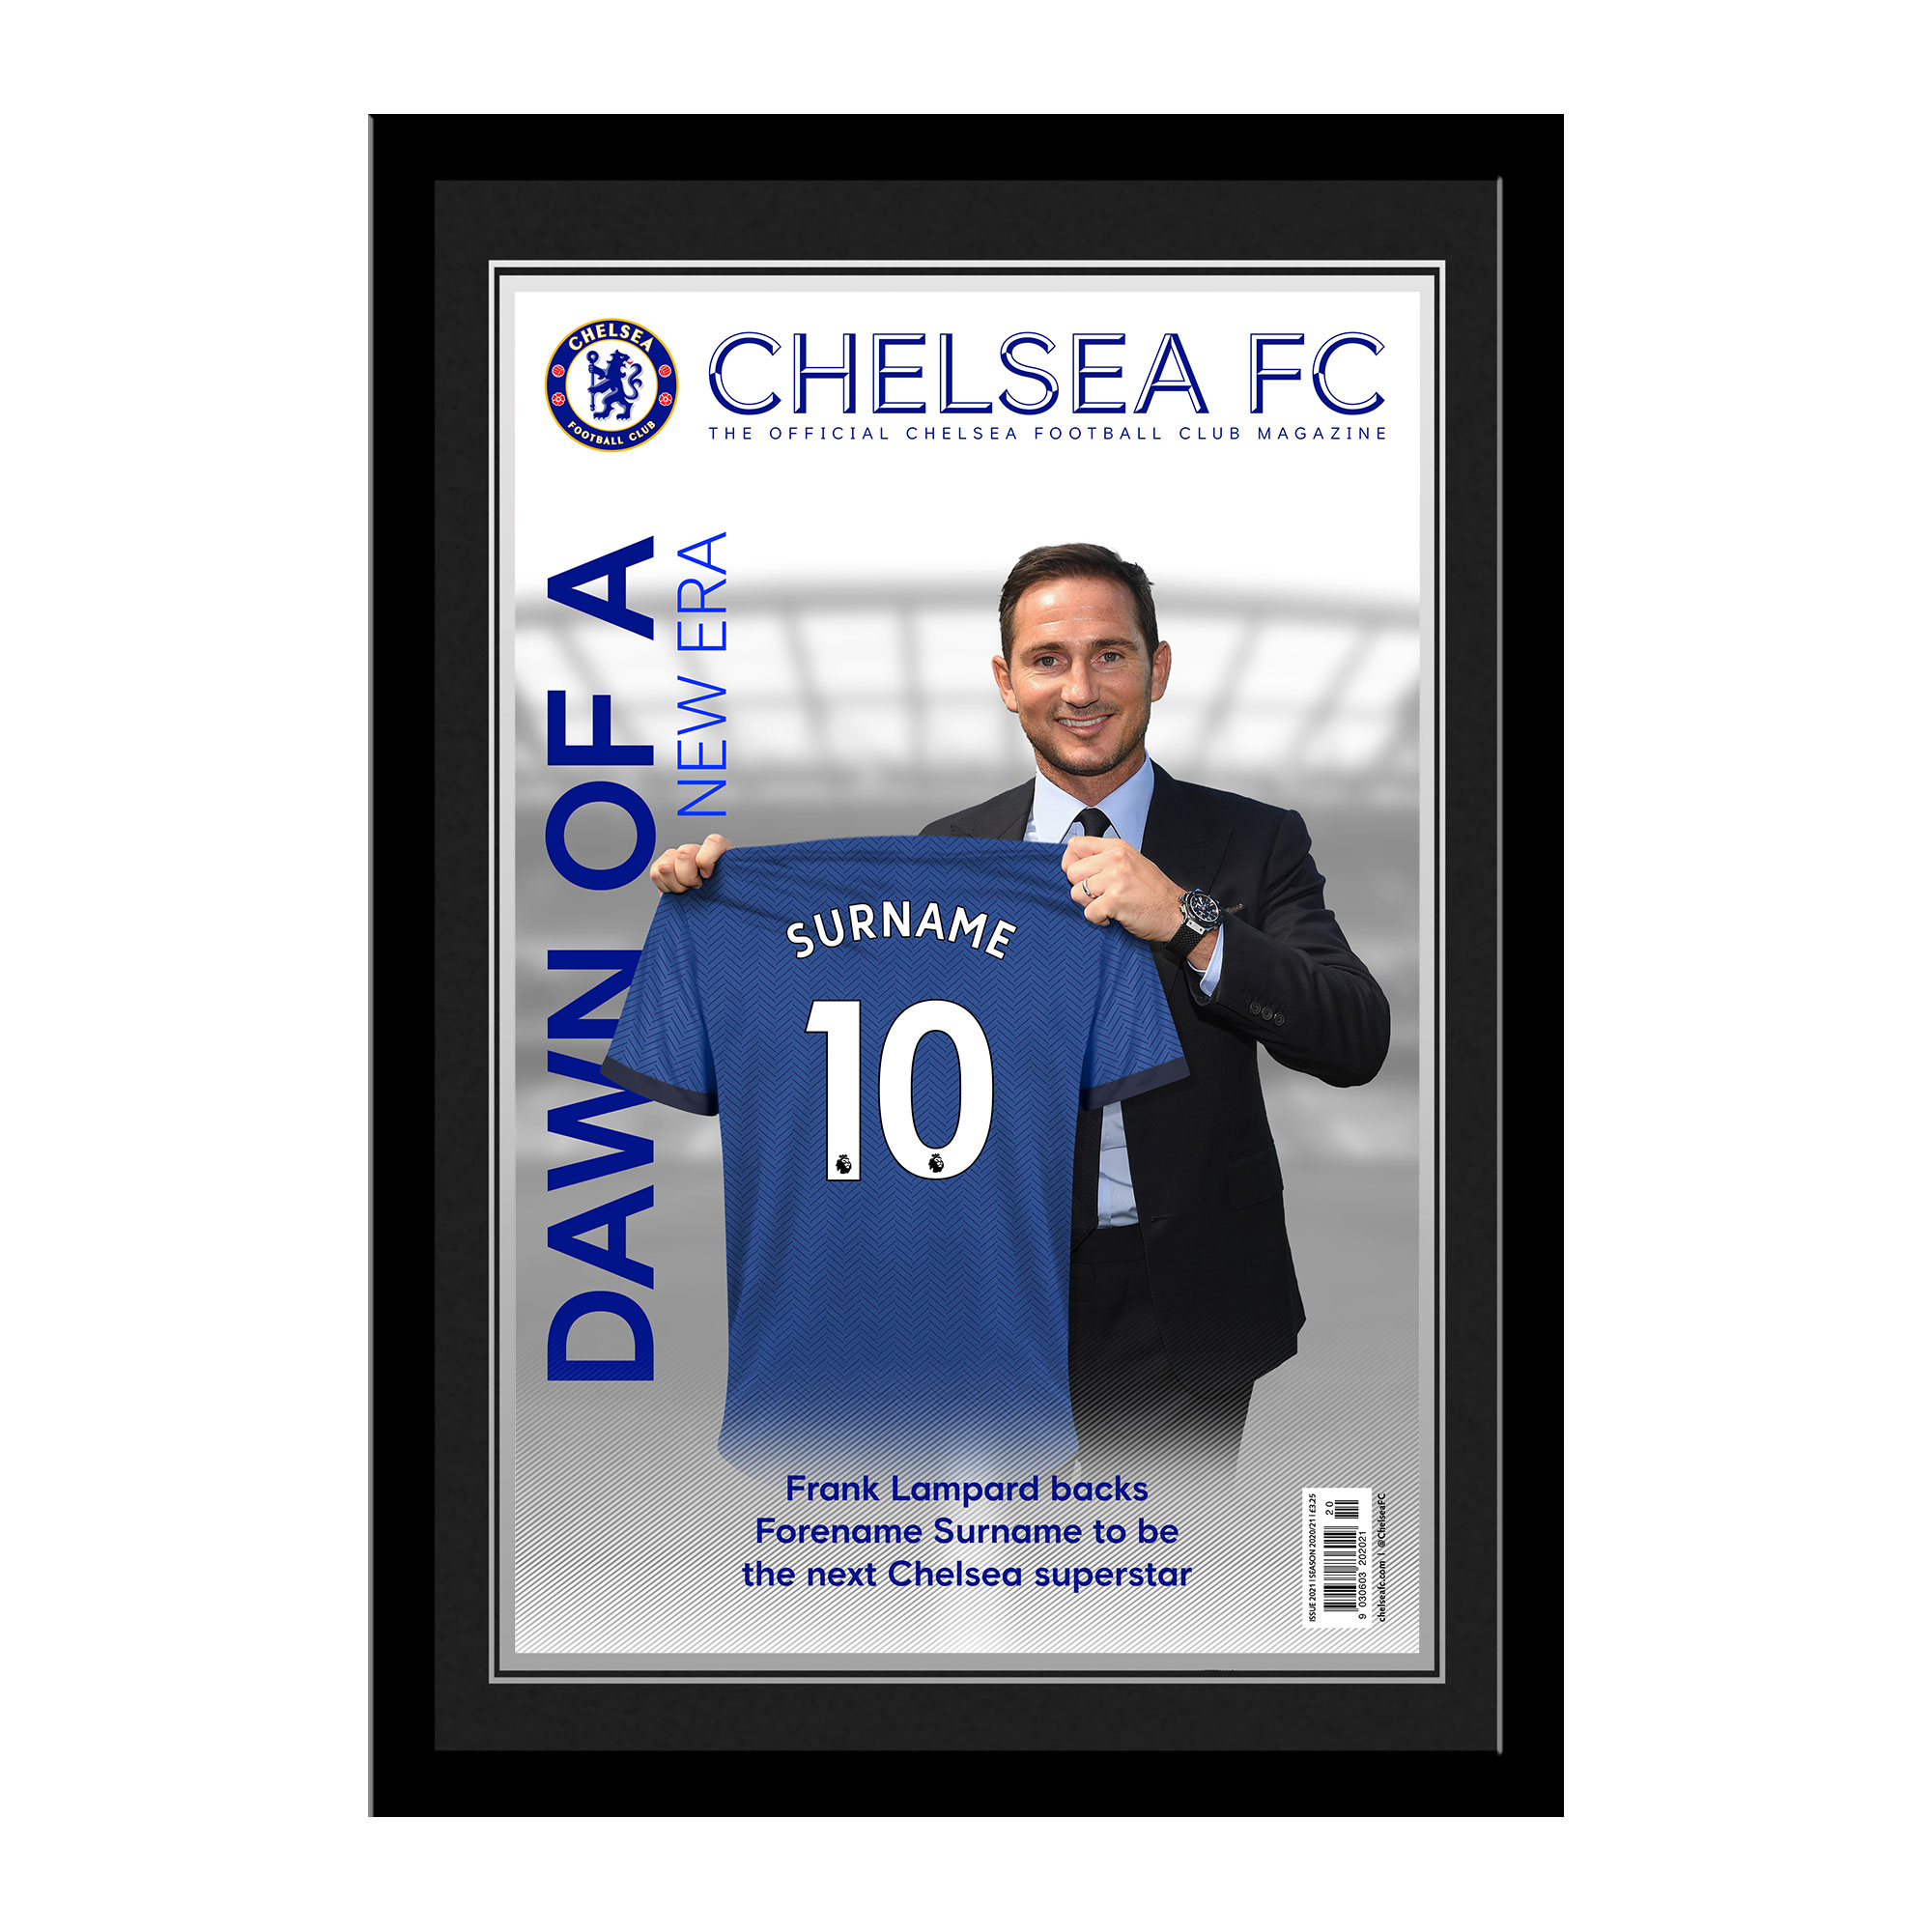 Chelsea FC Magazine Front Cover Photo Framed